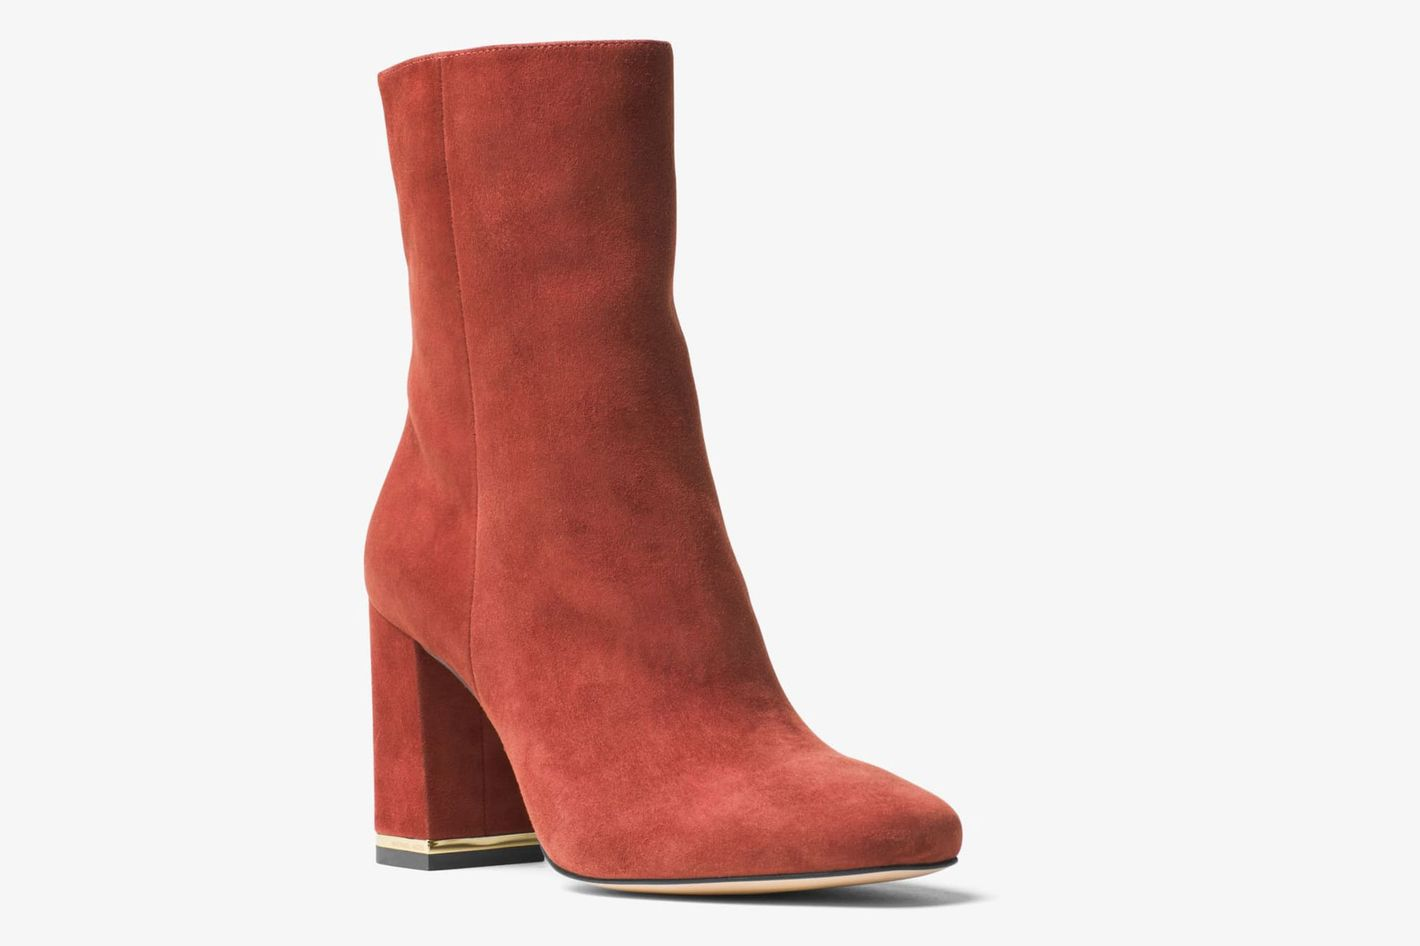 Michael Kors Ursula Suede Ankle Boot